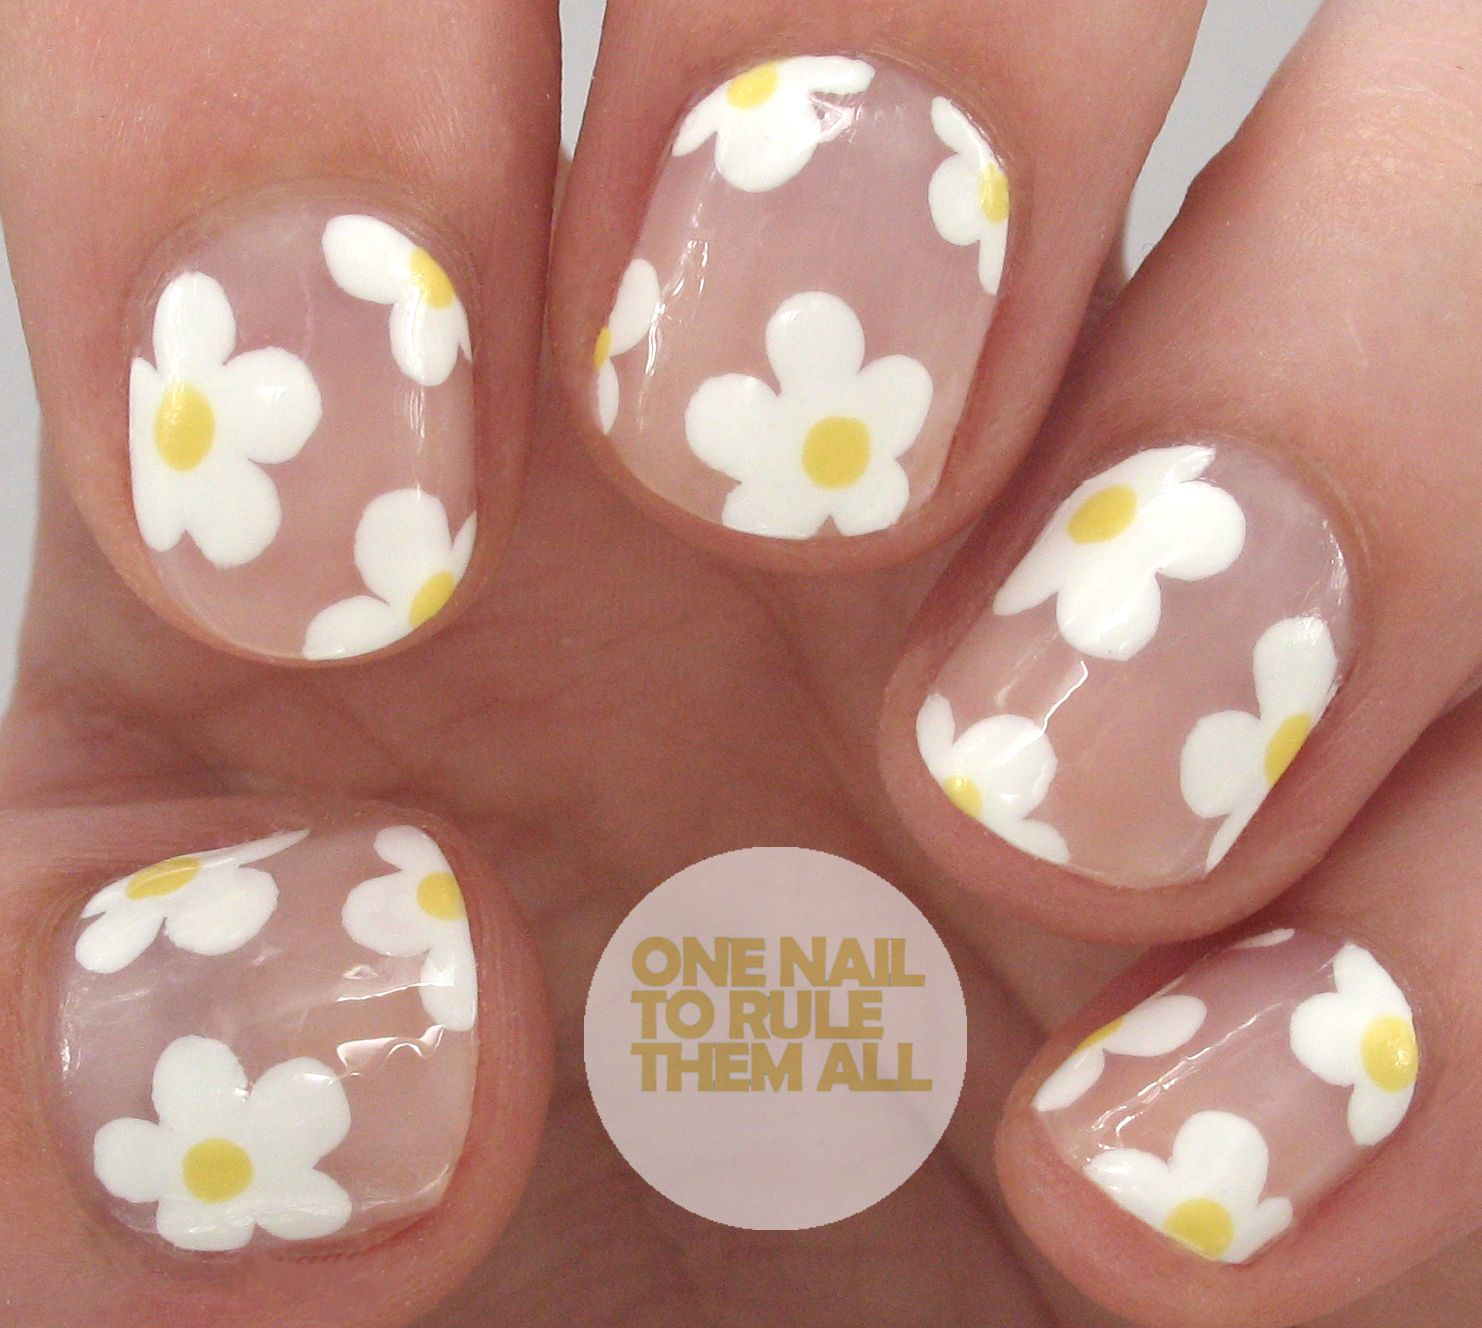 One Nail To Rule Them All: Negative Space Daisy Nail Art | Mani Pedi ...